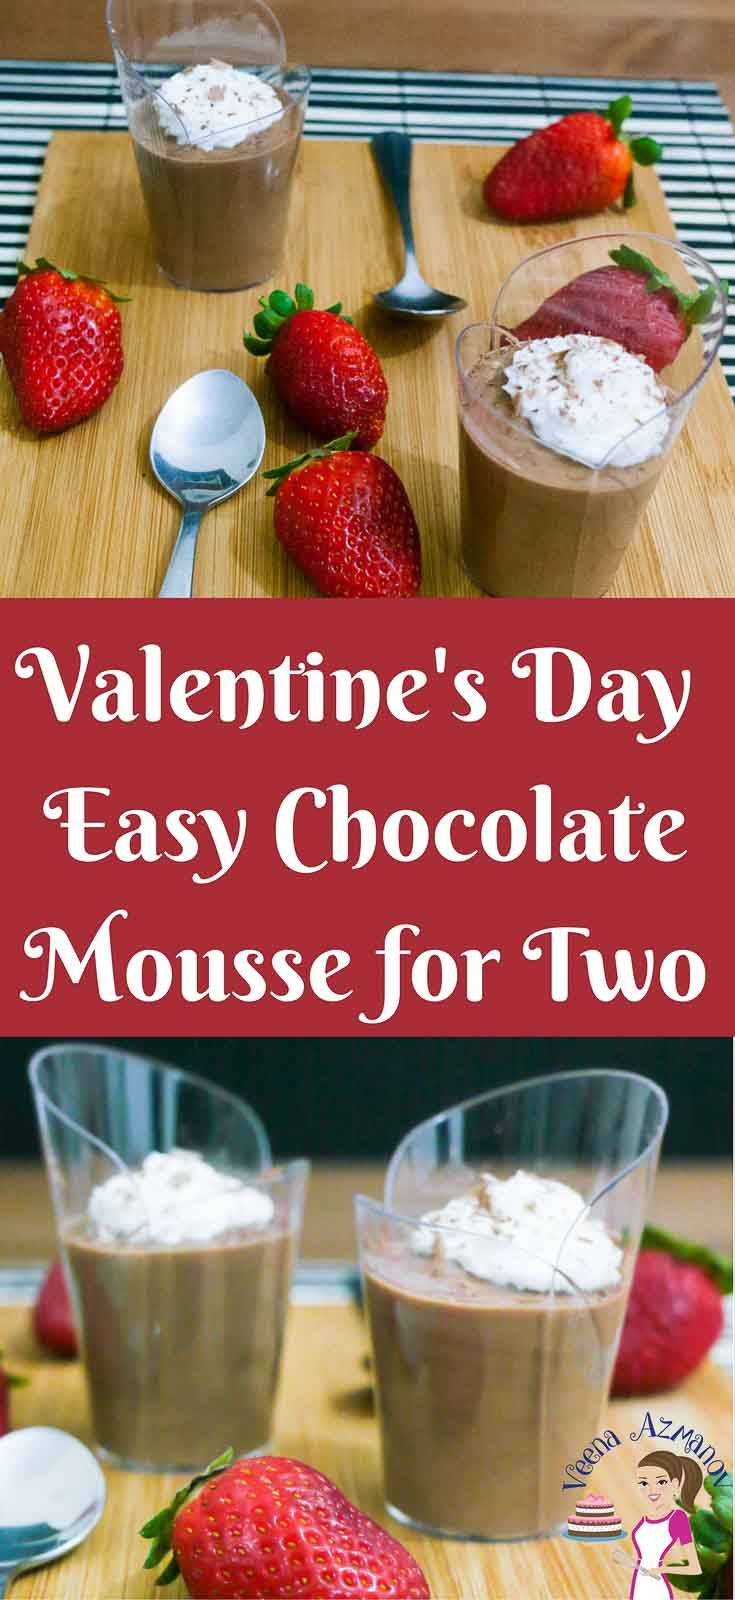 This easy chocolate mousse for two makes a perfect Valentine's Day dessert for you and your loved one. A simple, easy and effortless recipe that gets done is five minutes or less. Rich dark chocolate flavored with the aroma of coffee and liqueur lightened with whipped cream for that luxurious finish.